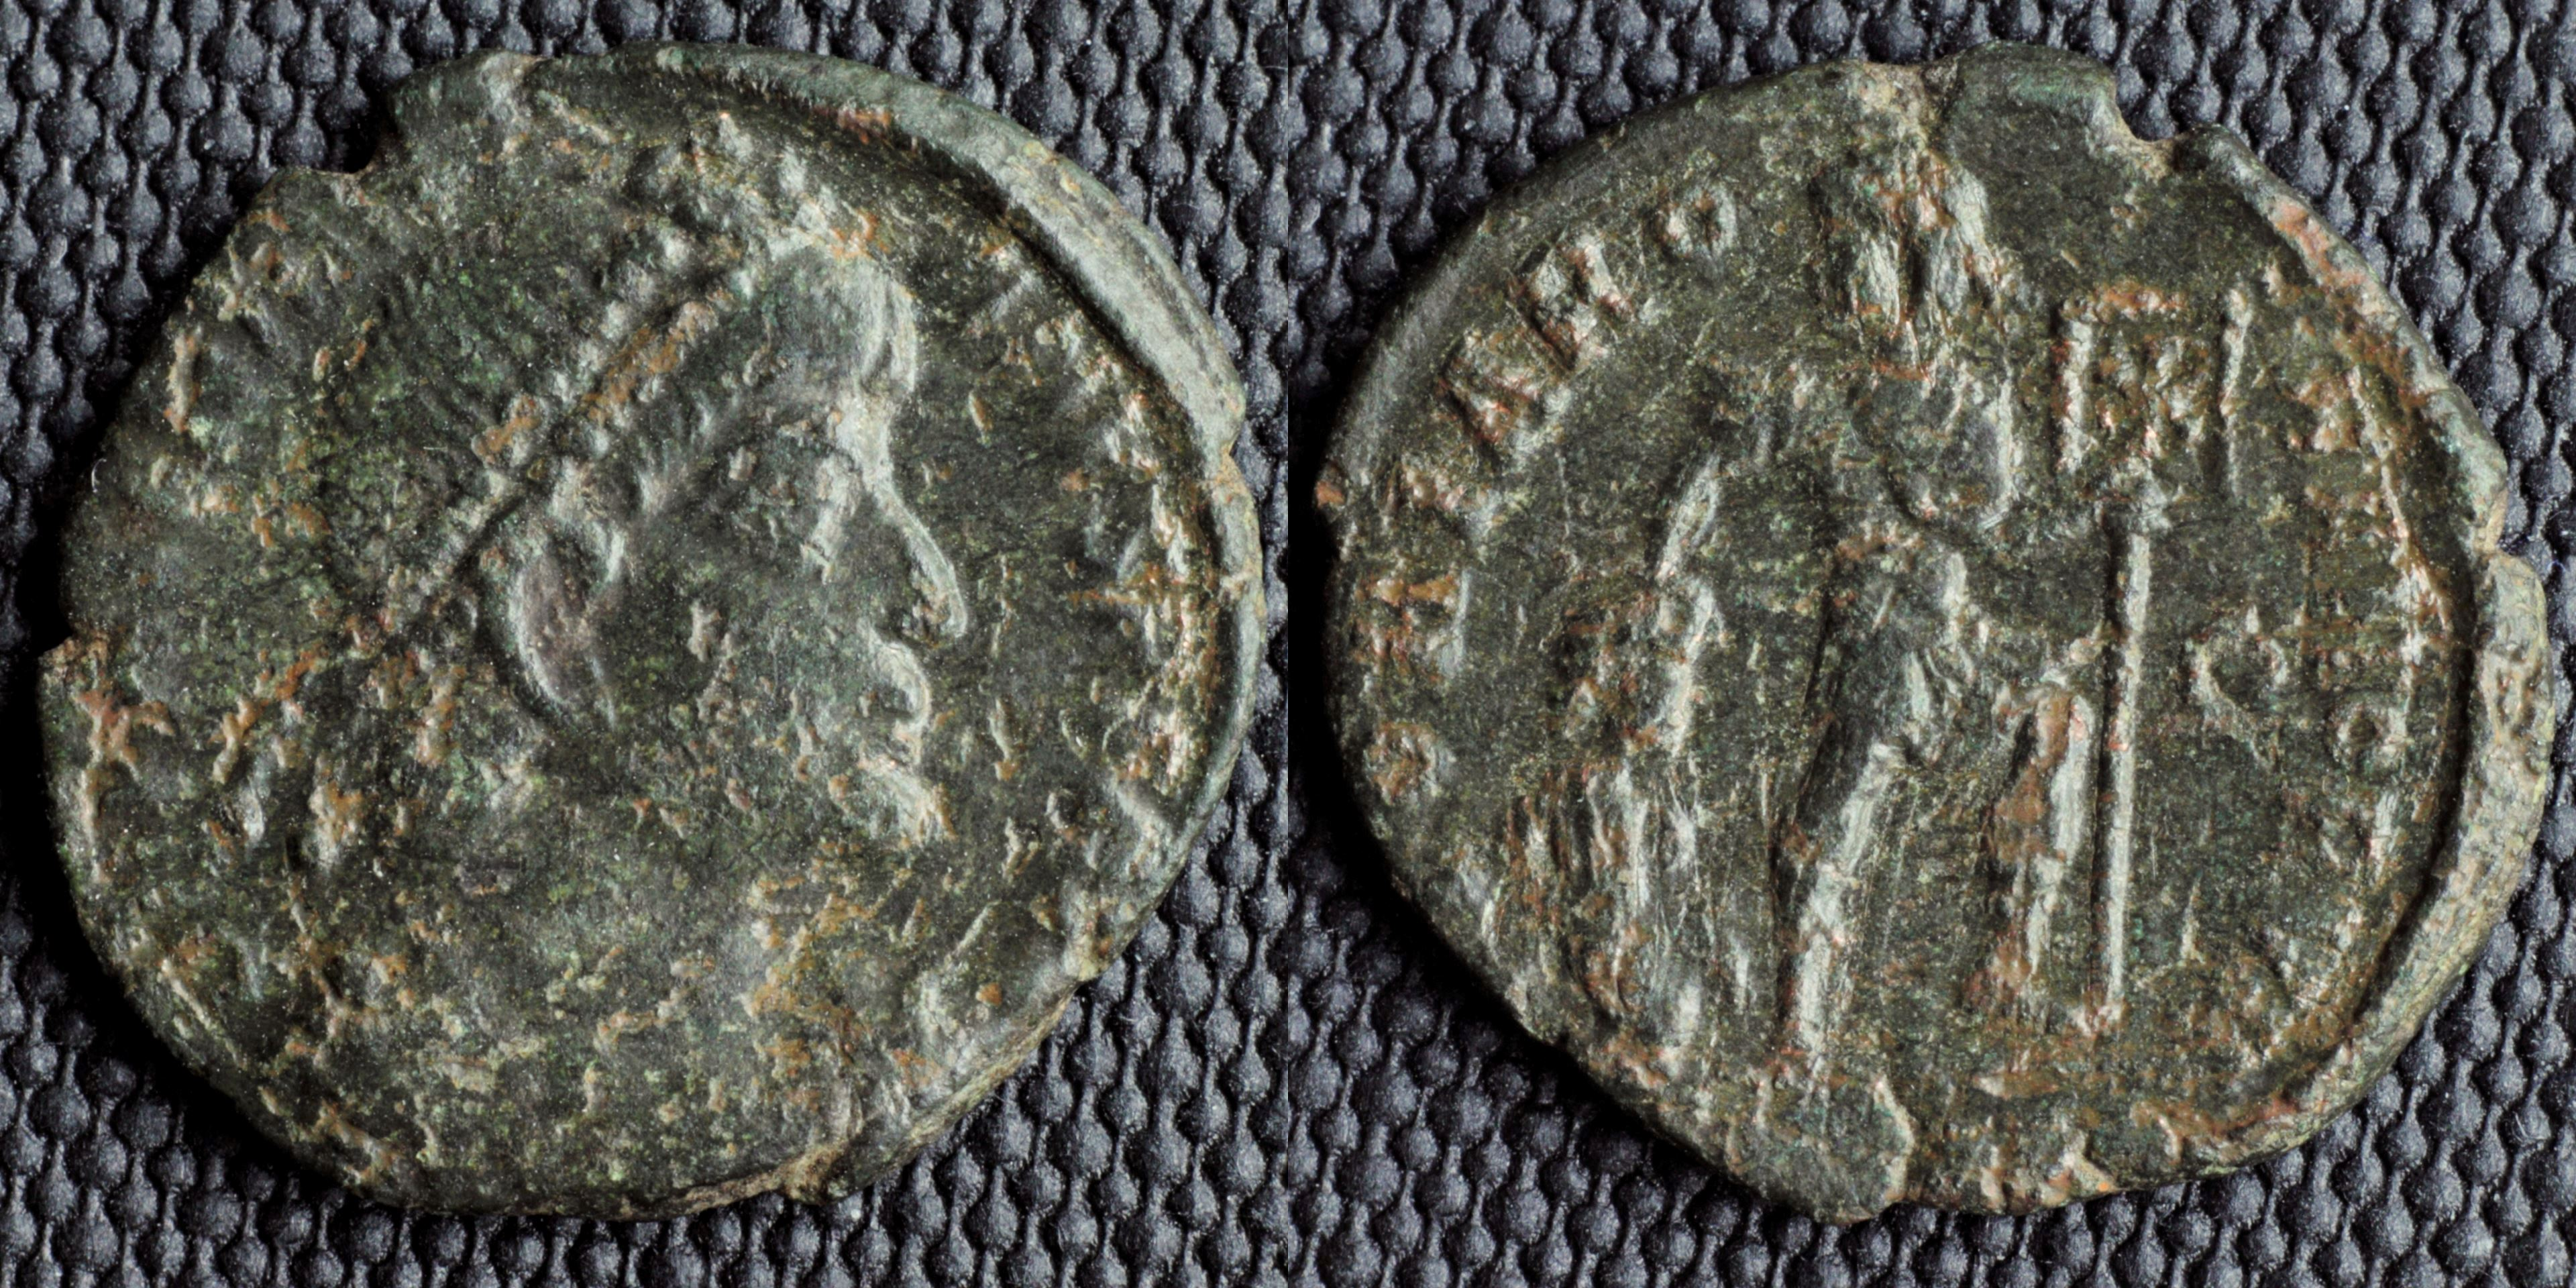 /Files/Images/Coinsite/CoinDB/179_Valentinian_o_TES.jpg